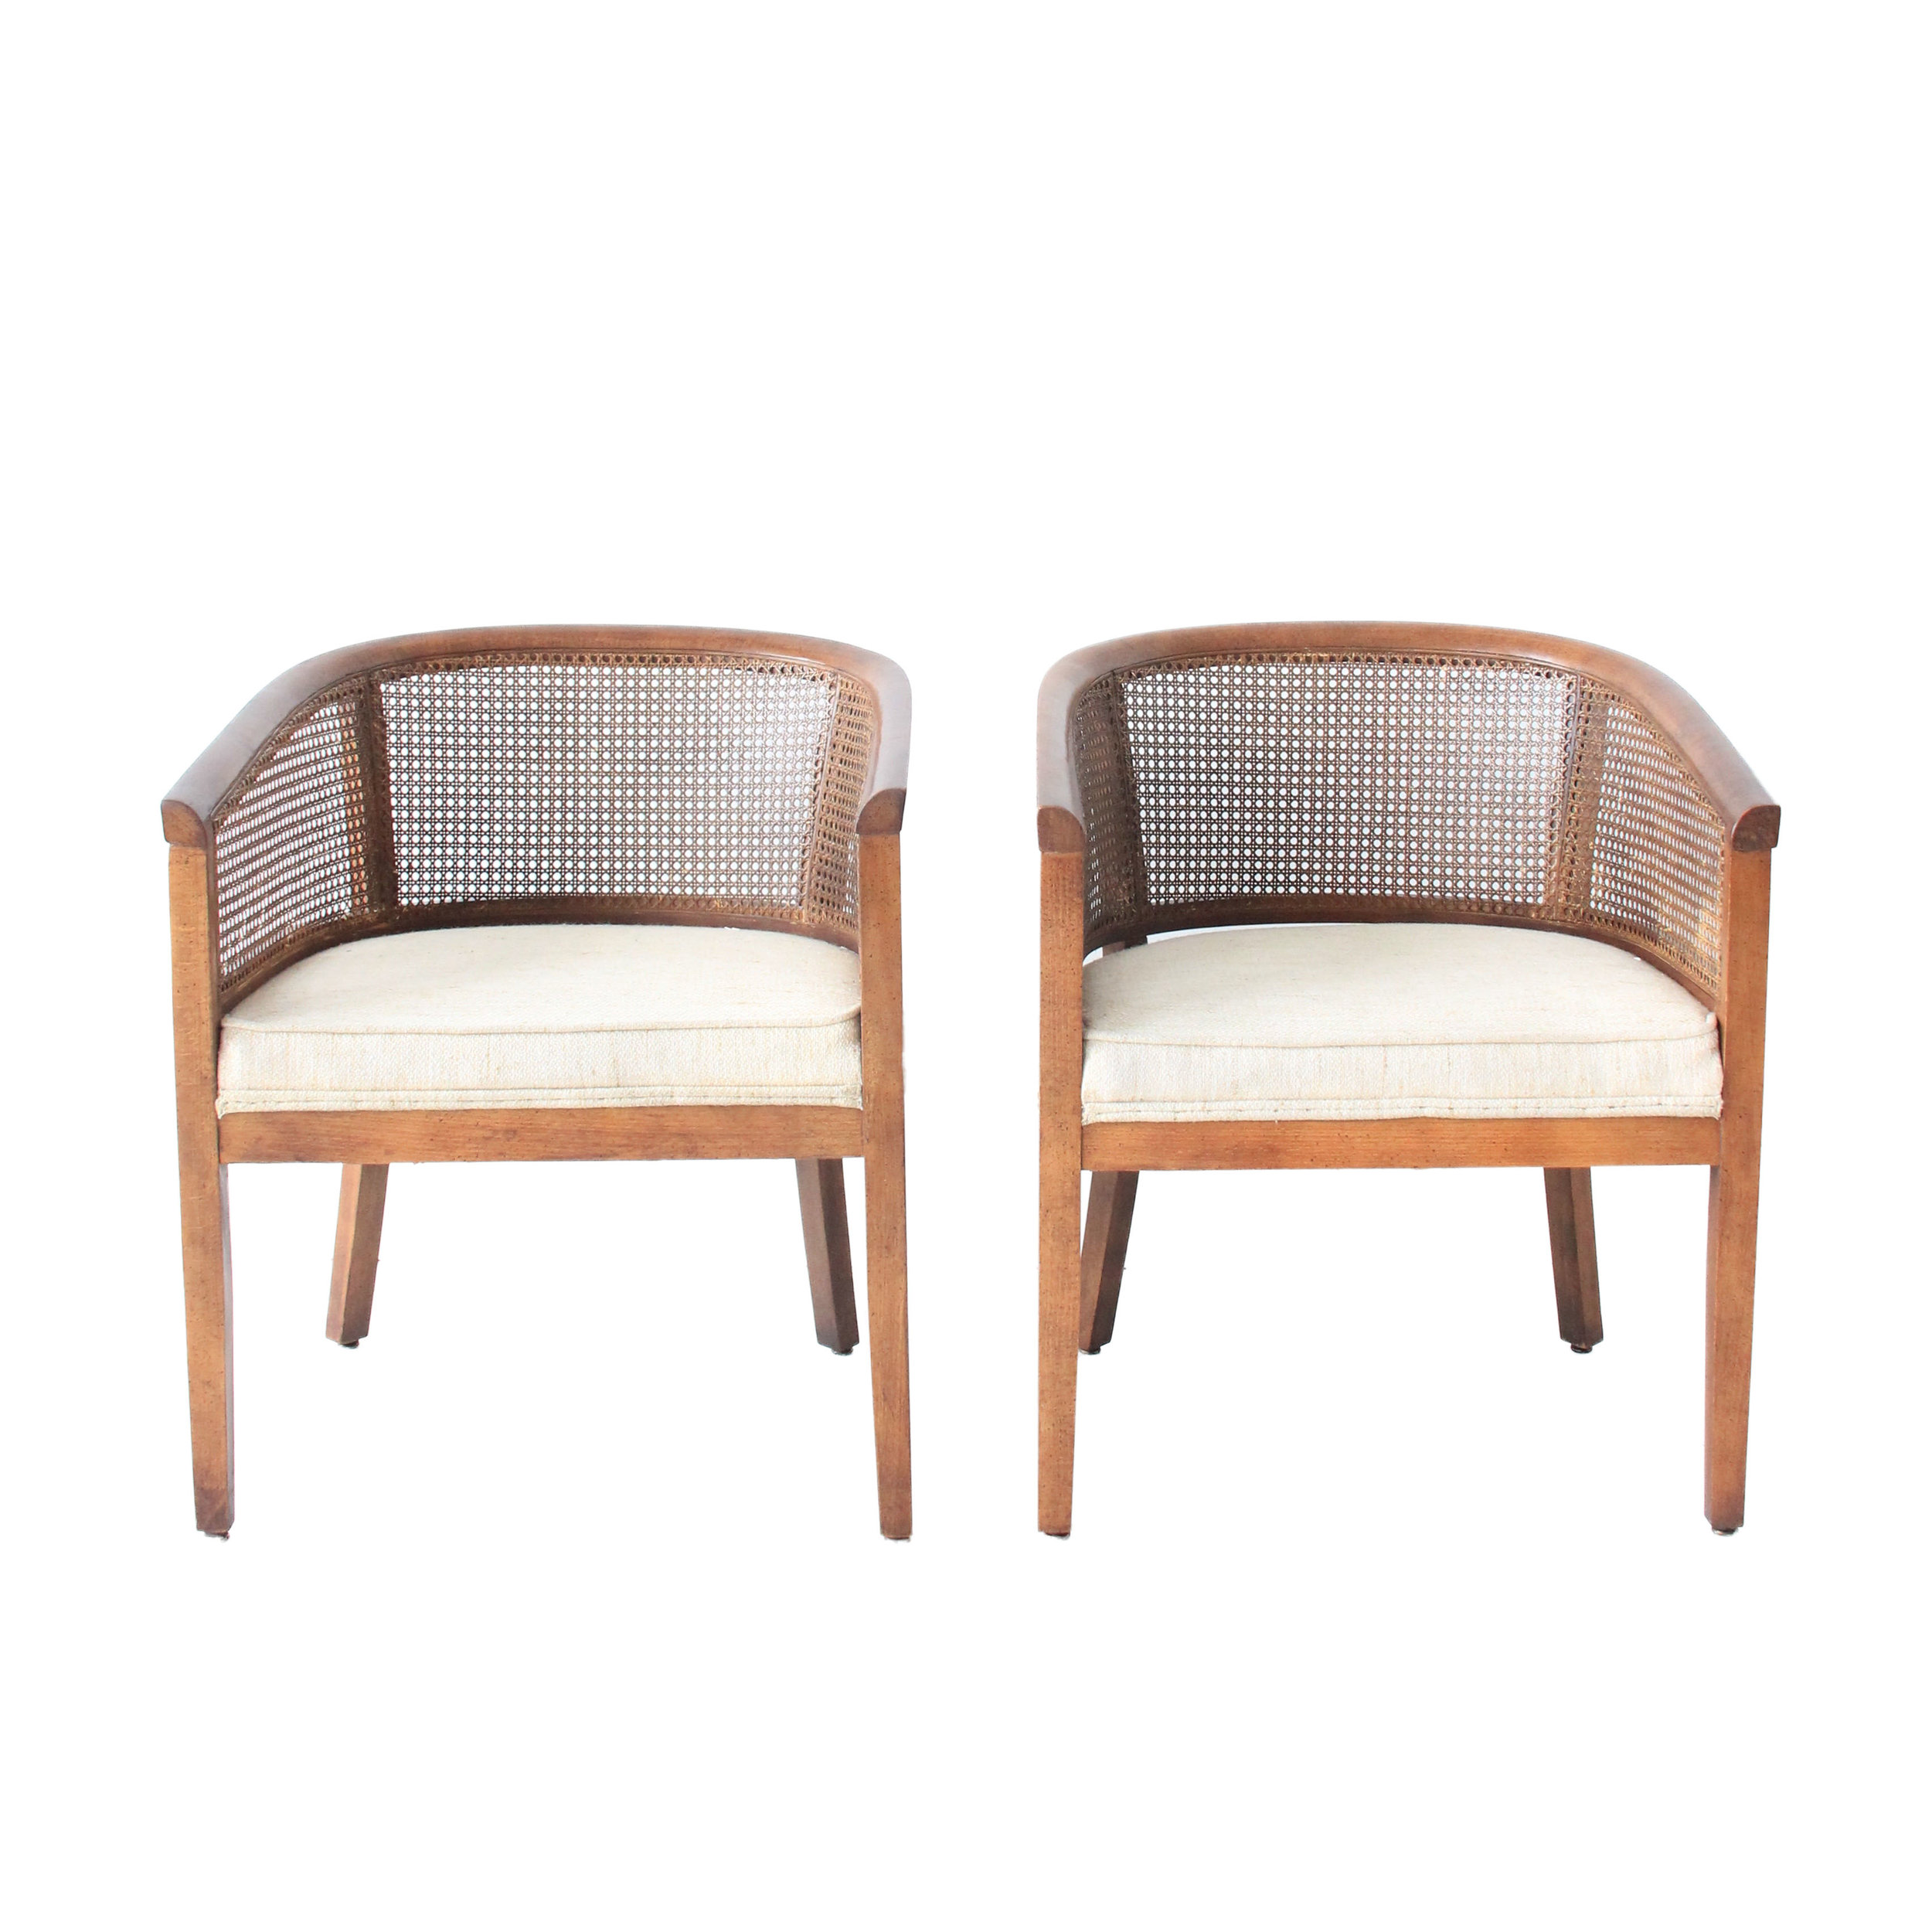 Vintage Cane Accent Chairs